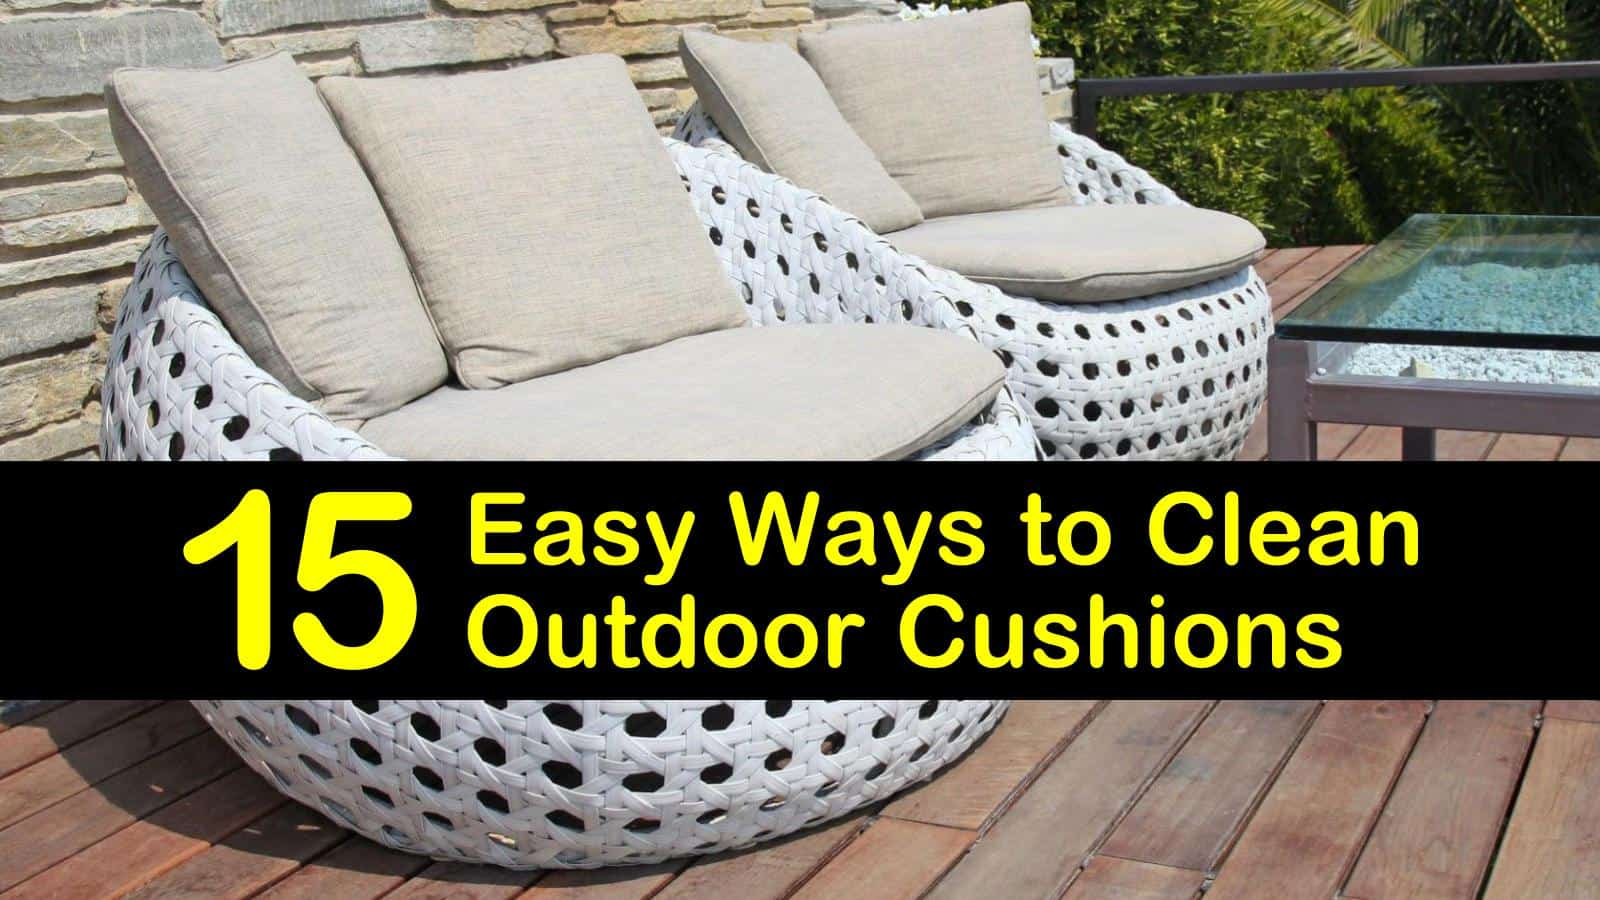 how to clean outdoor cushions titleimg1